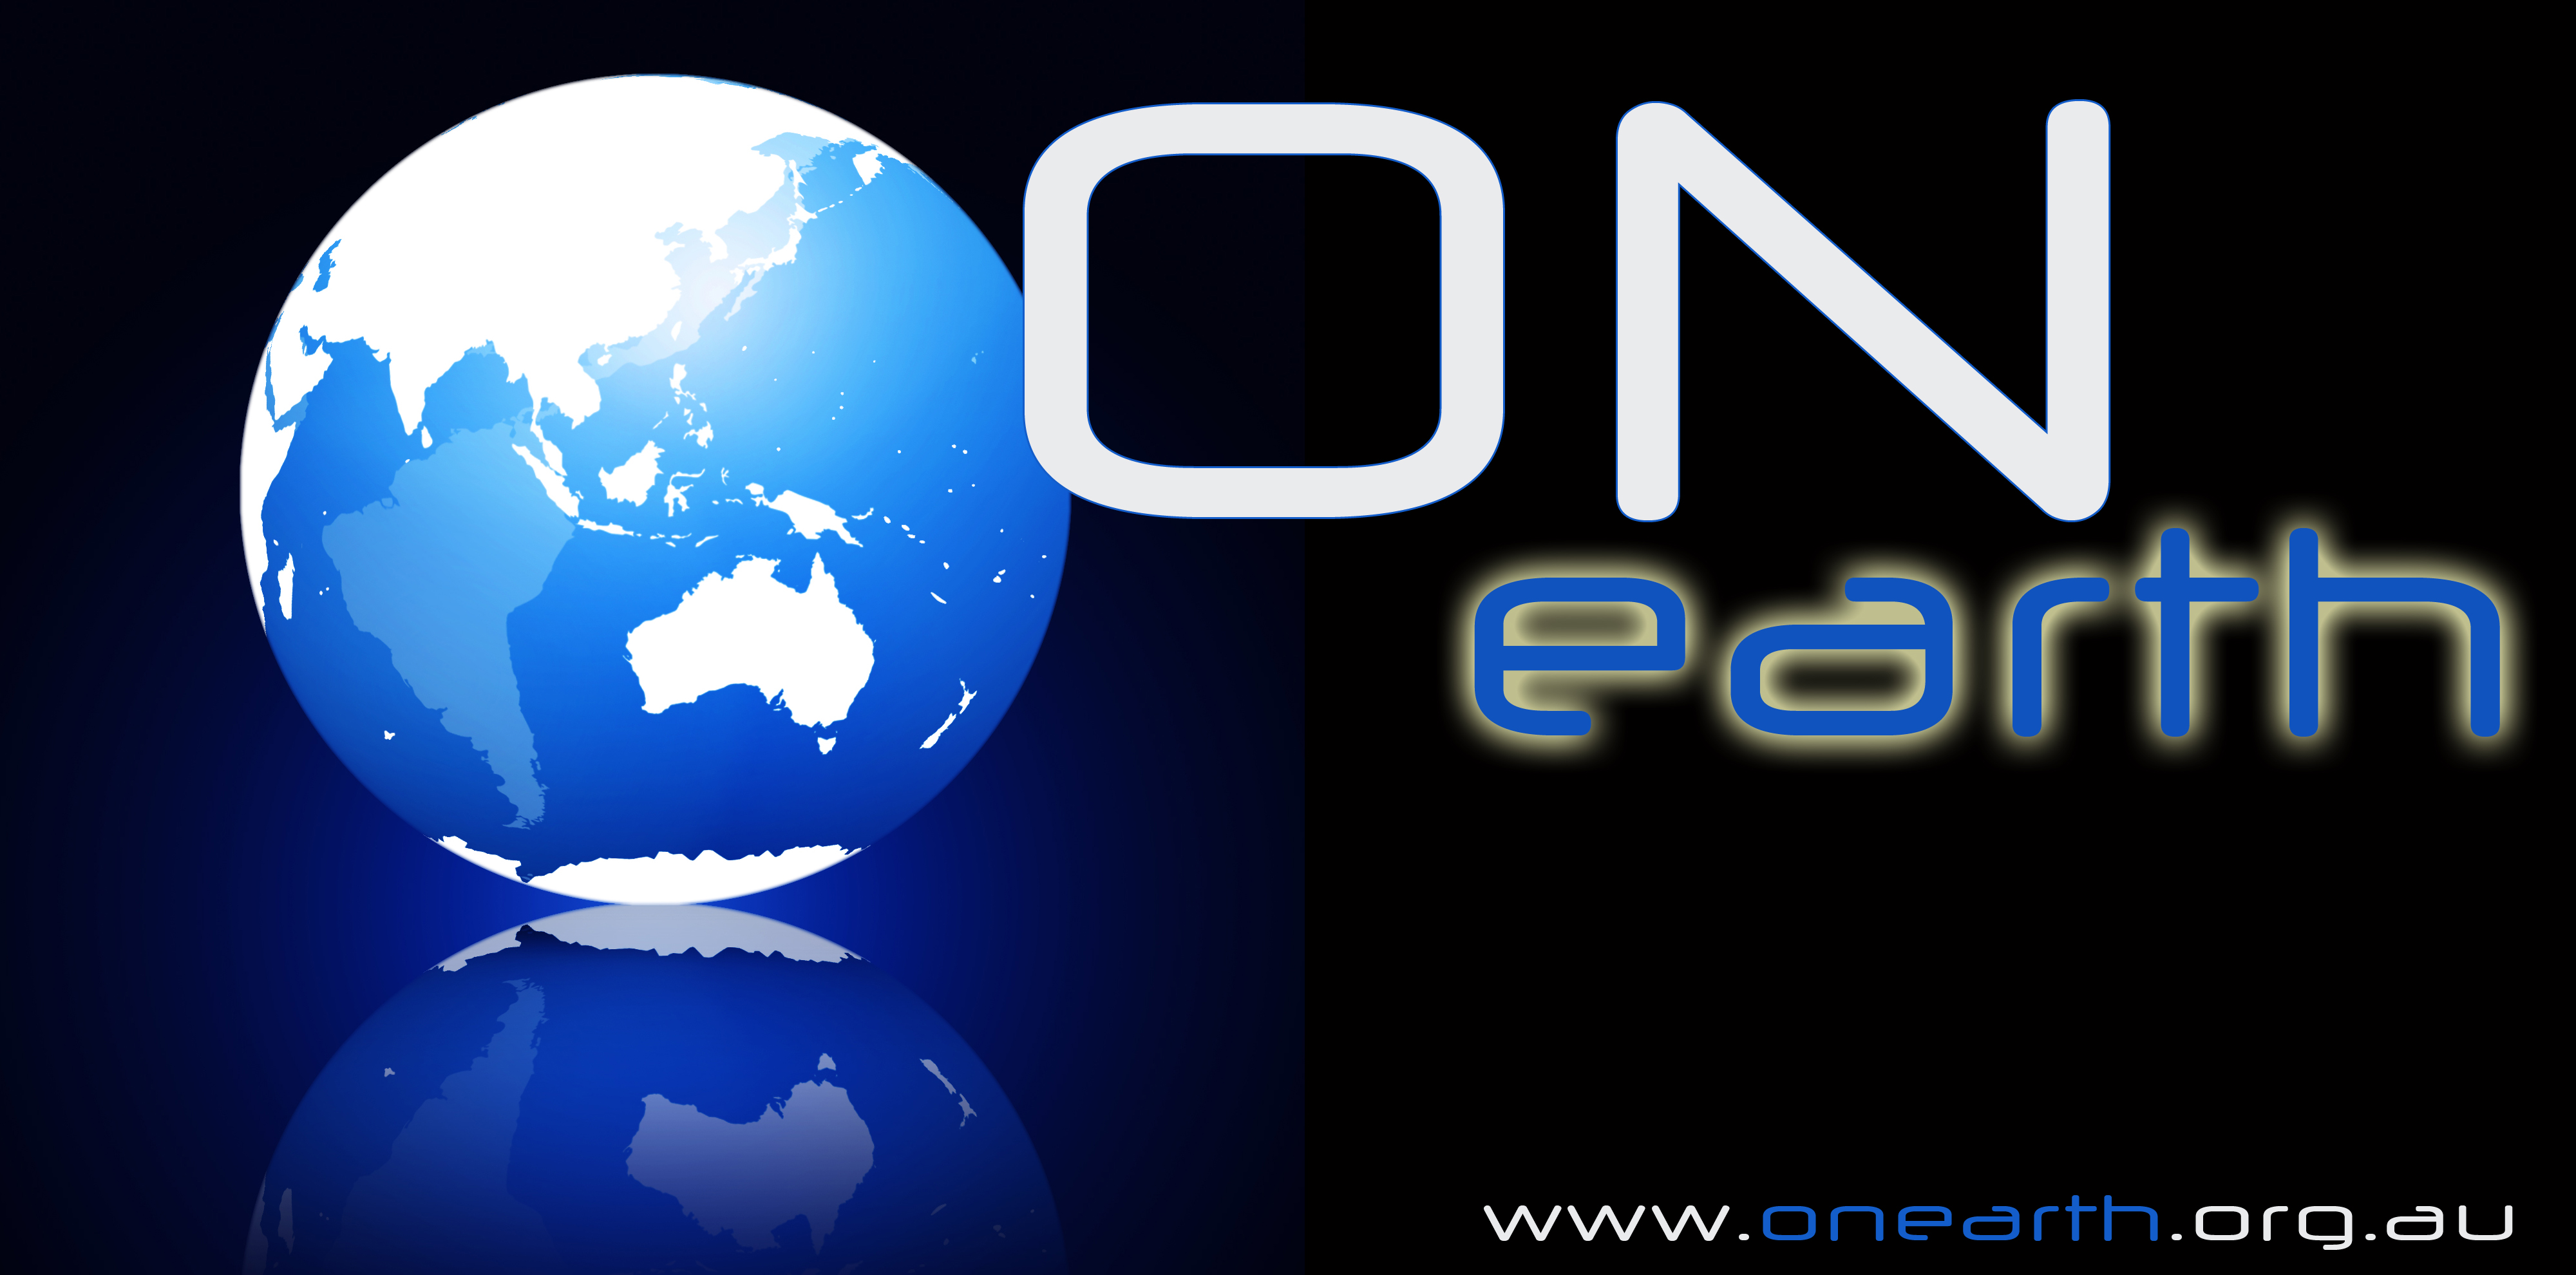 onearth11